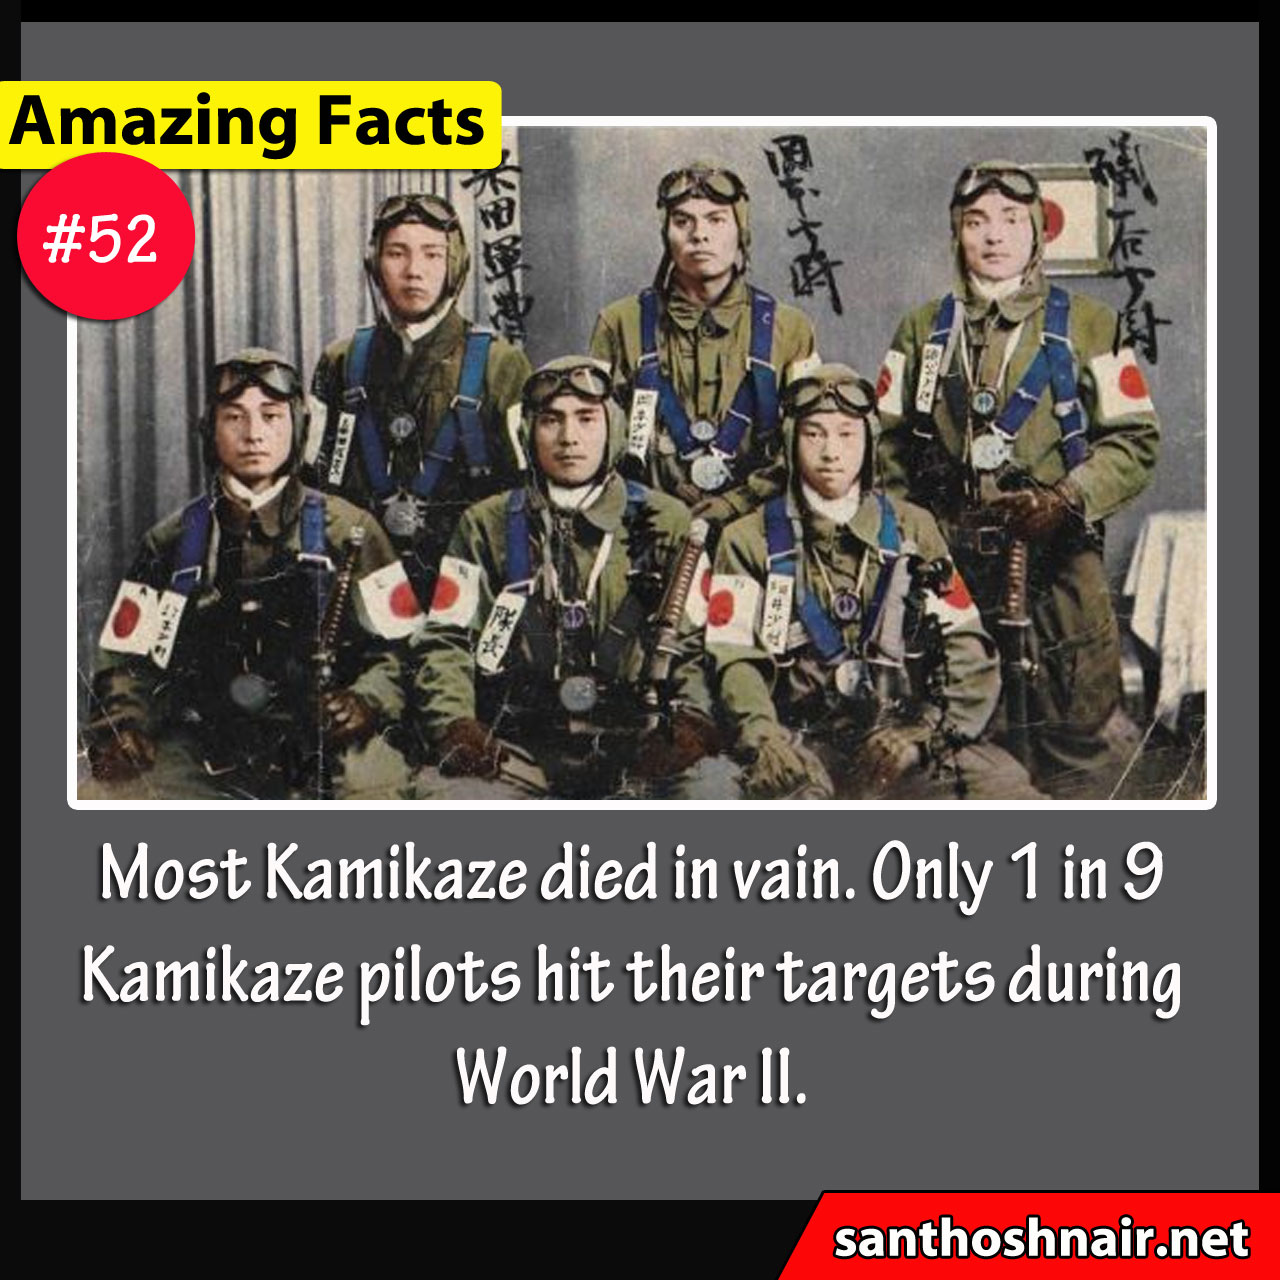 Amazing Facts #52 - Kamikaze Pilots